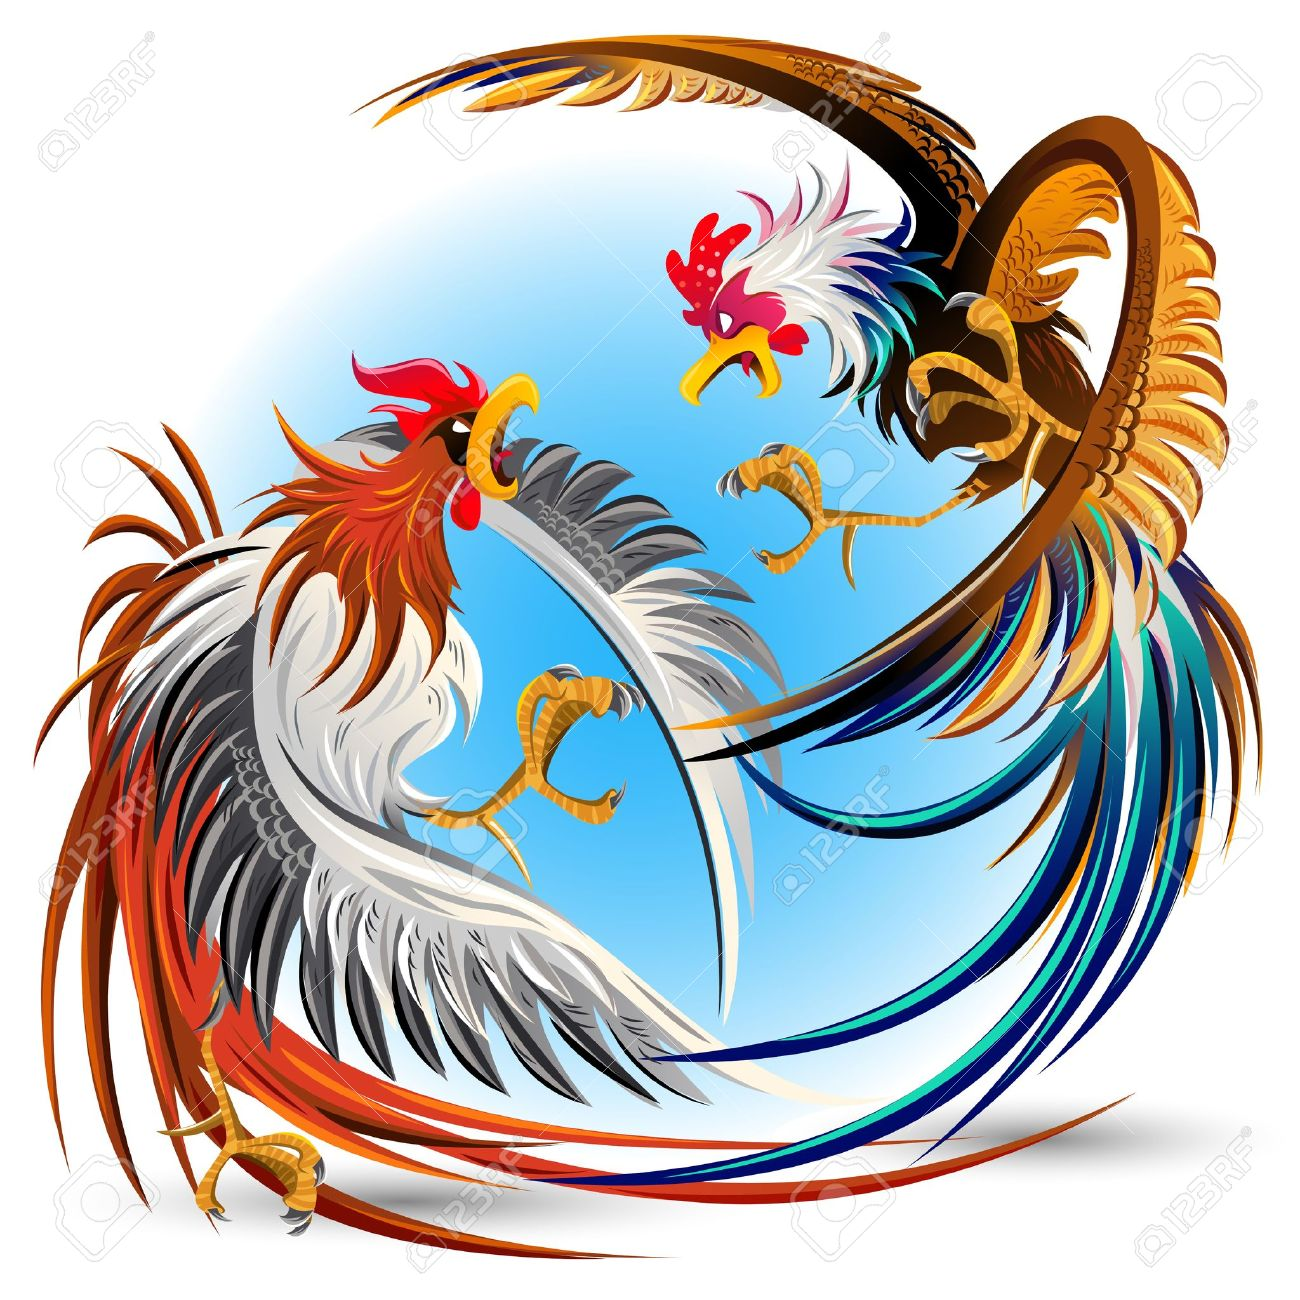 Chicken clipart fighter Rooster Asian rooster Search fighting